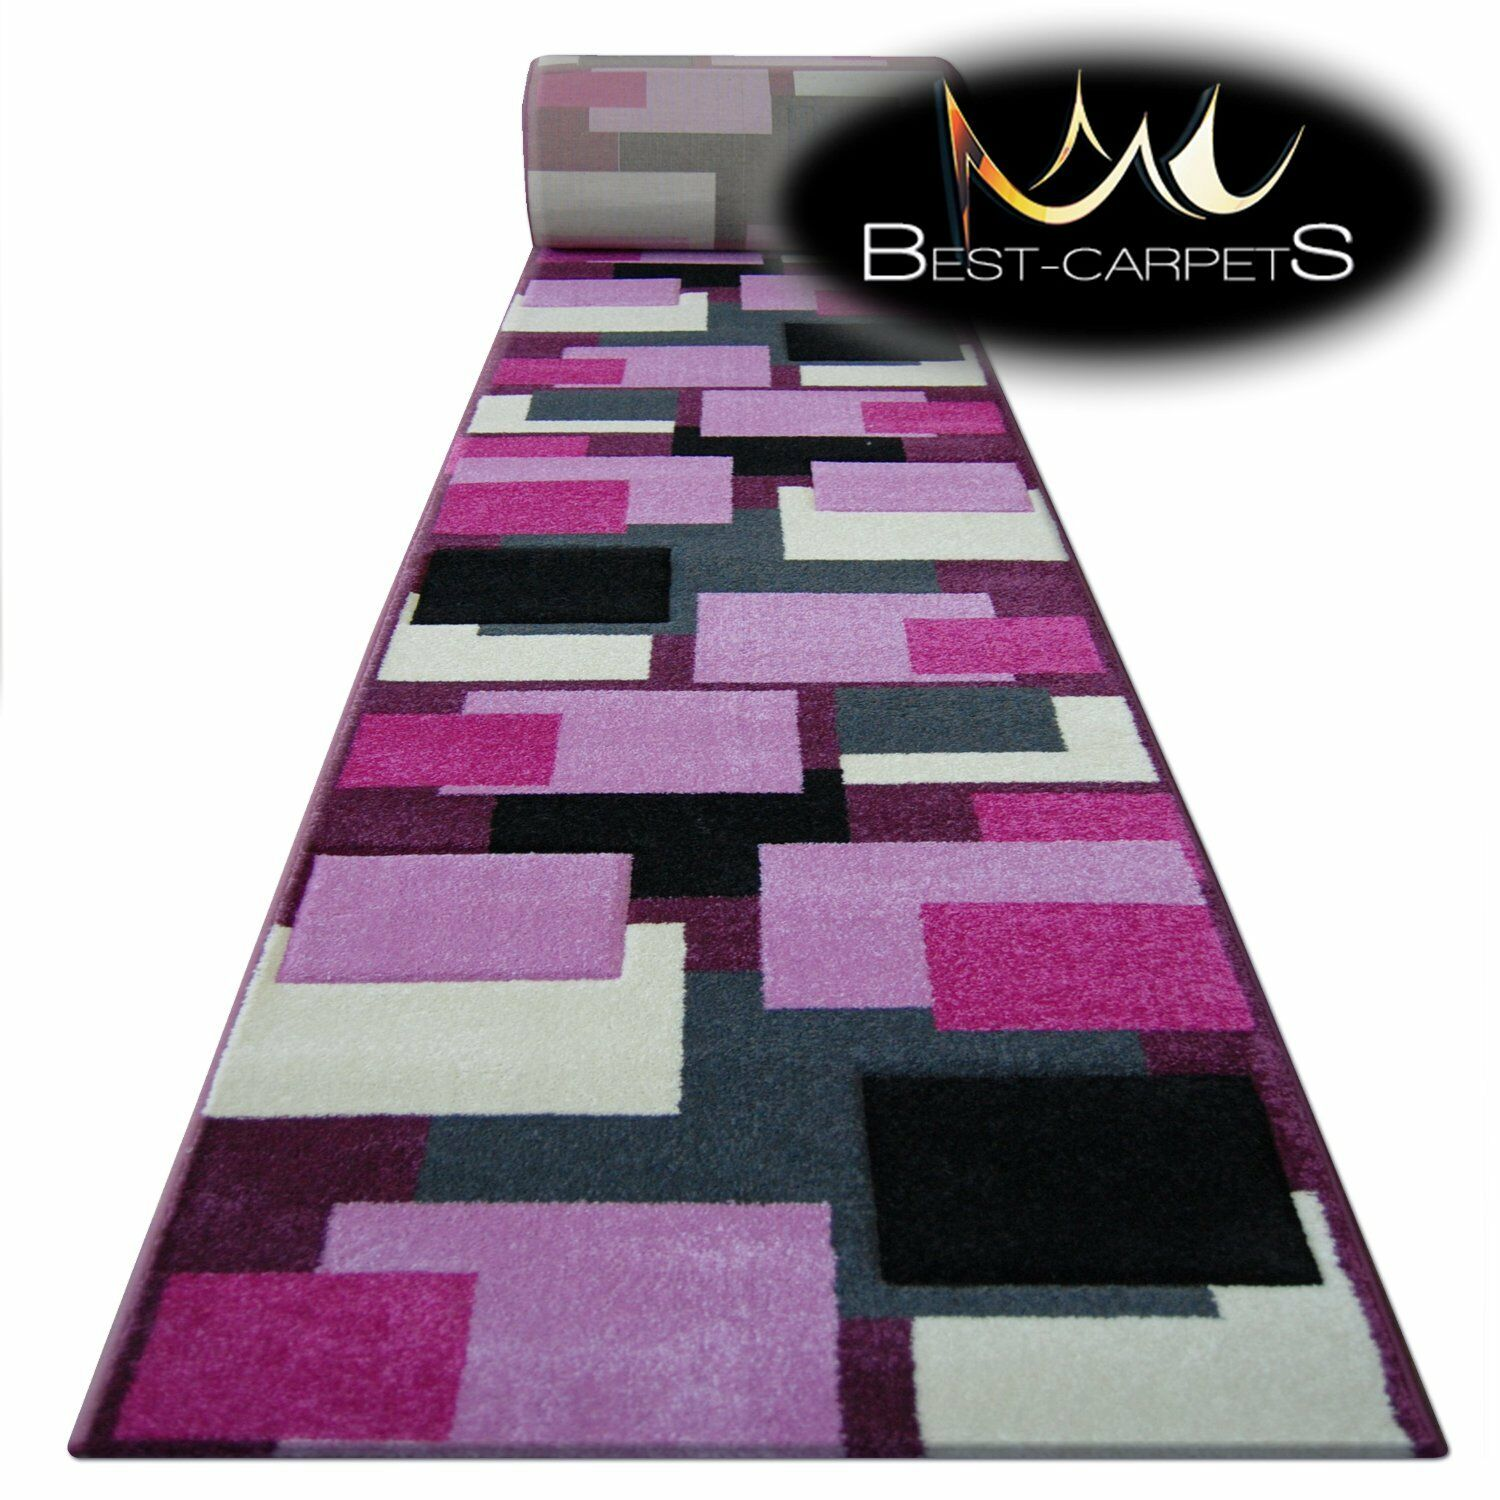 Runner Rugs, Rugs, Rugs, pilly 8404 Purple/Pink, moderne, Stairs Width 70-120 cm Extra Long | Une Bonne Conservation De Chaleur  71b059